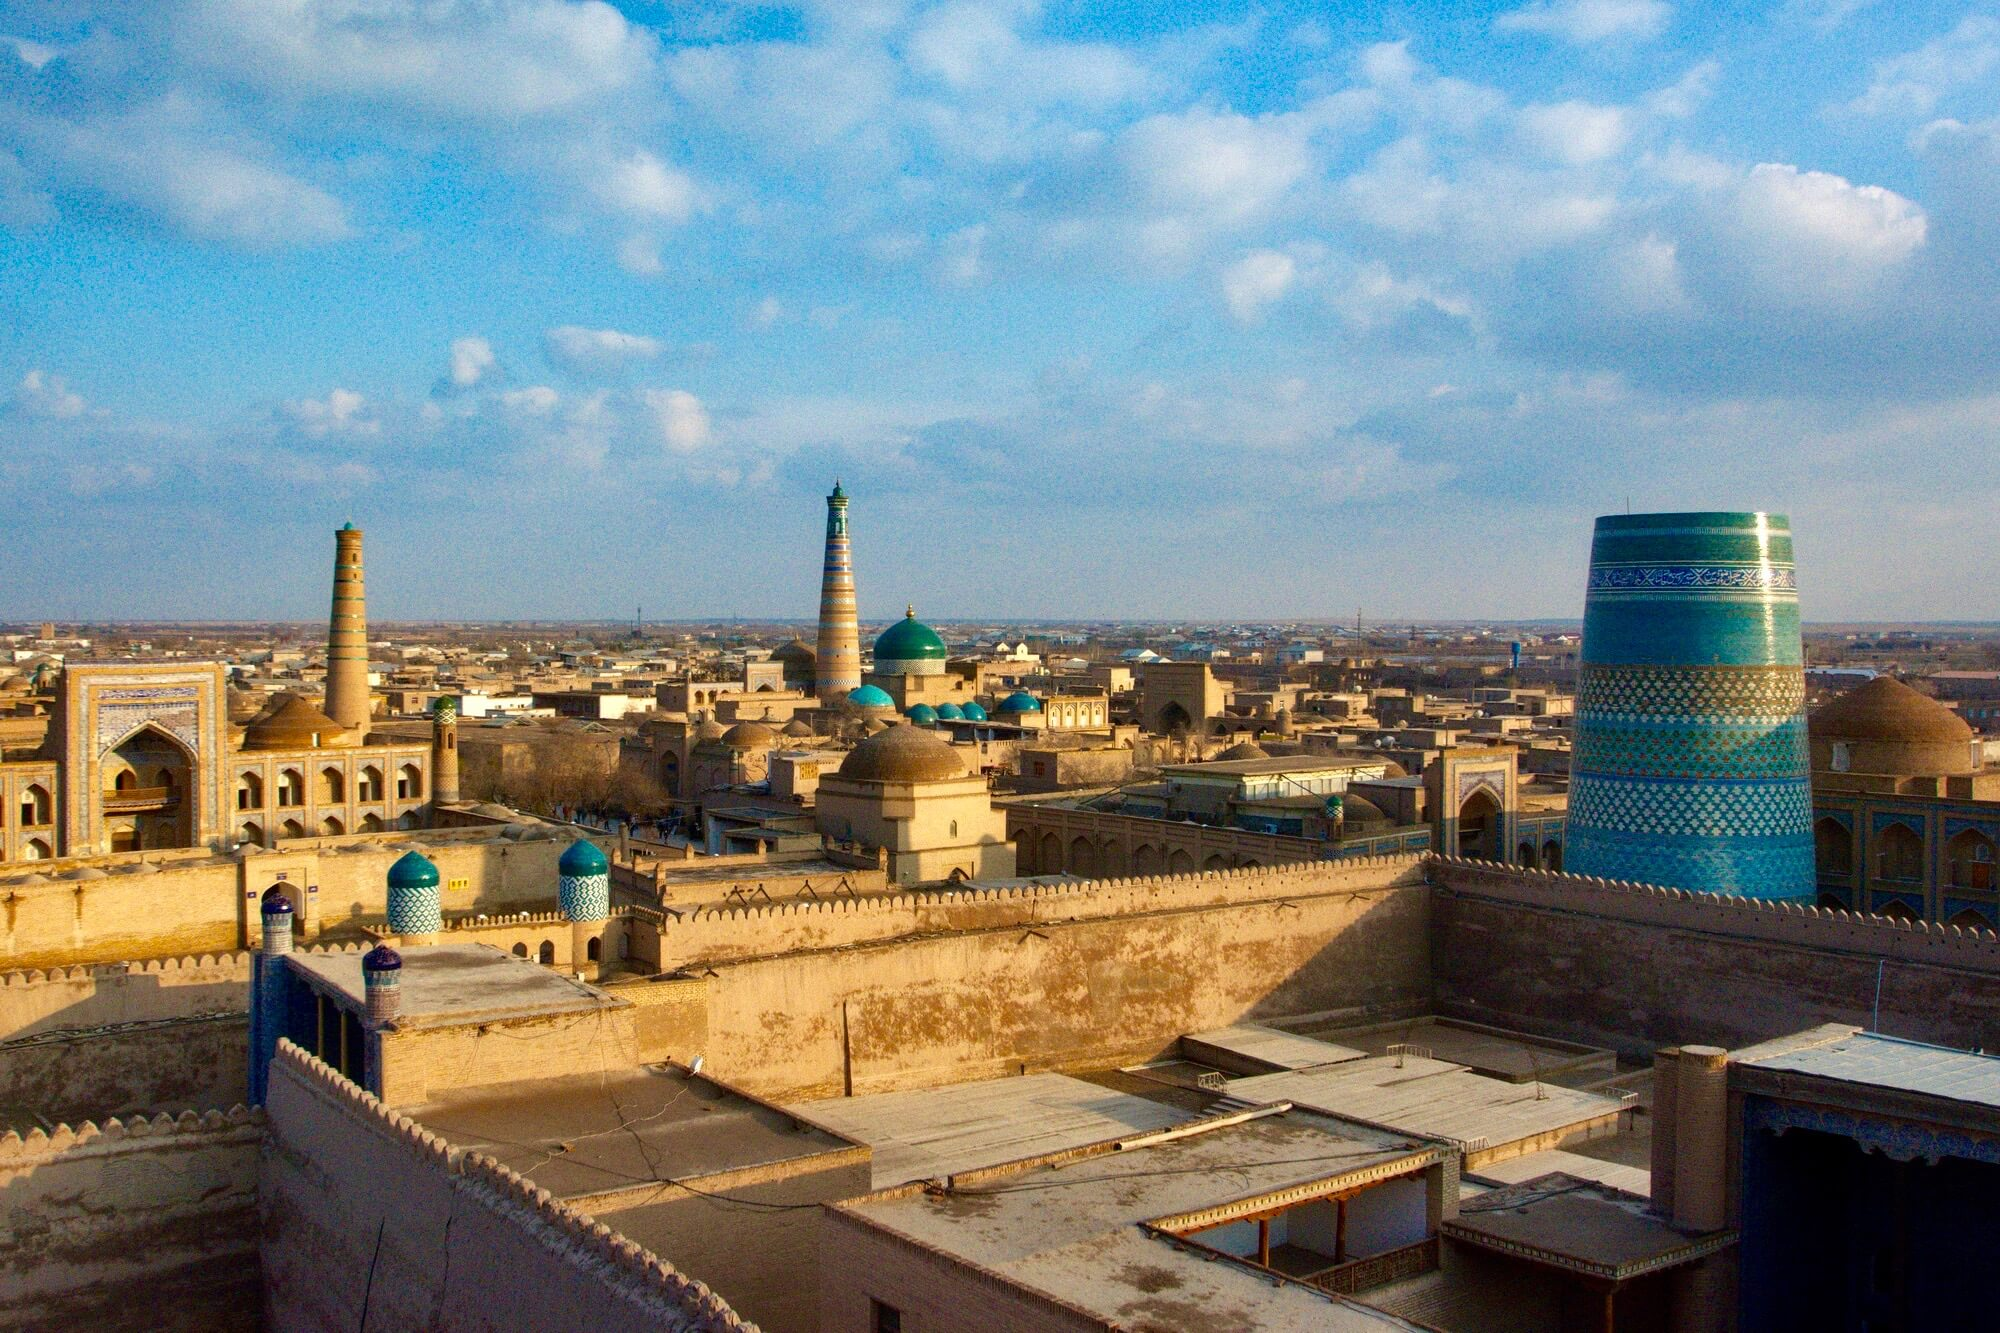 Khiva is a classic silk road city in Uzbekistan